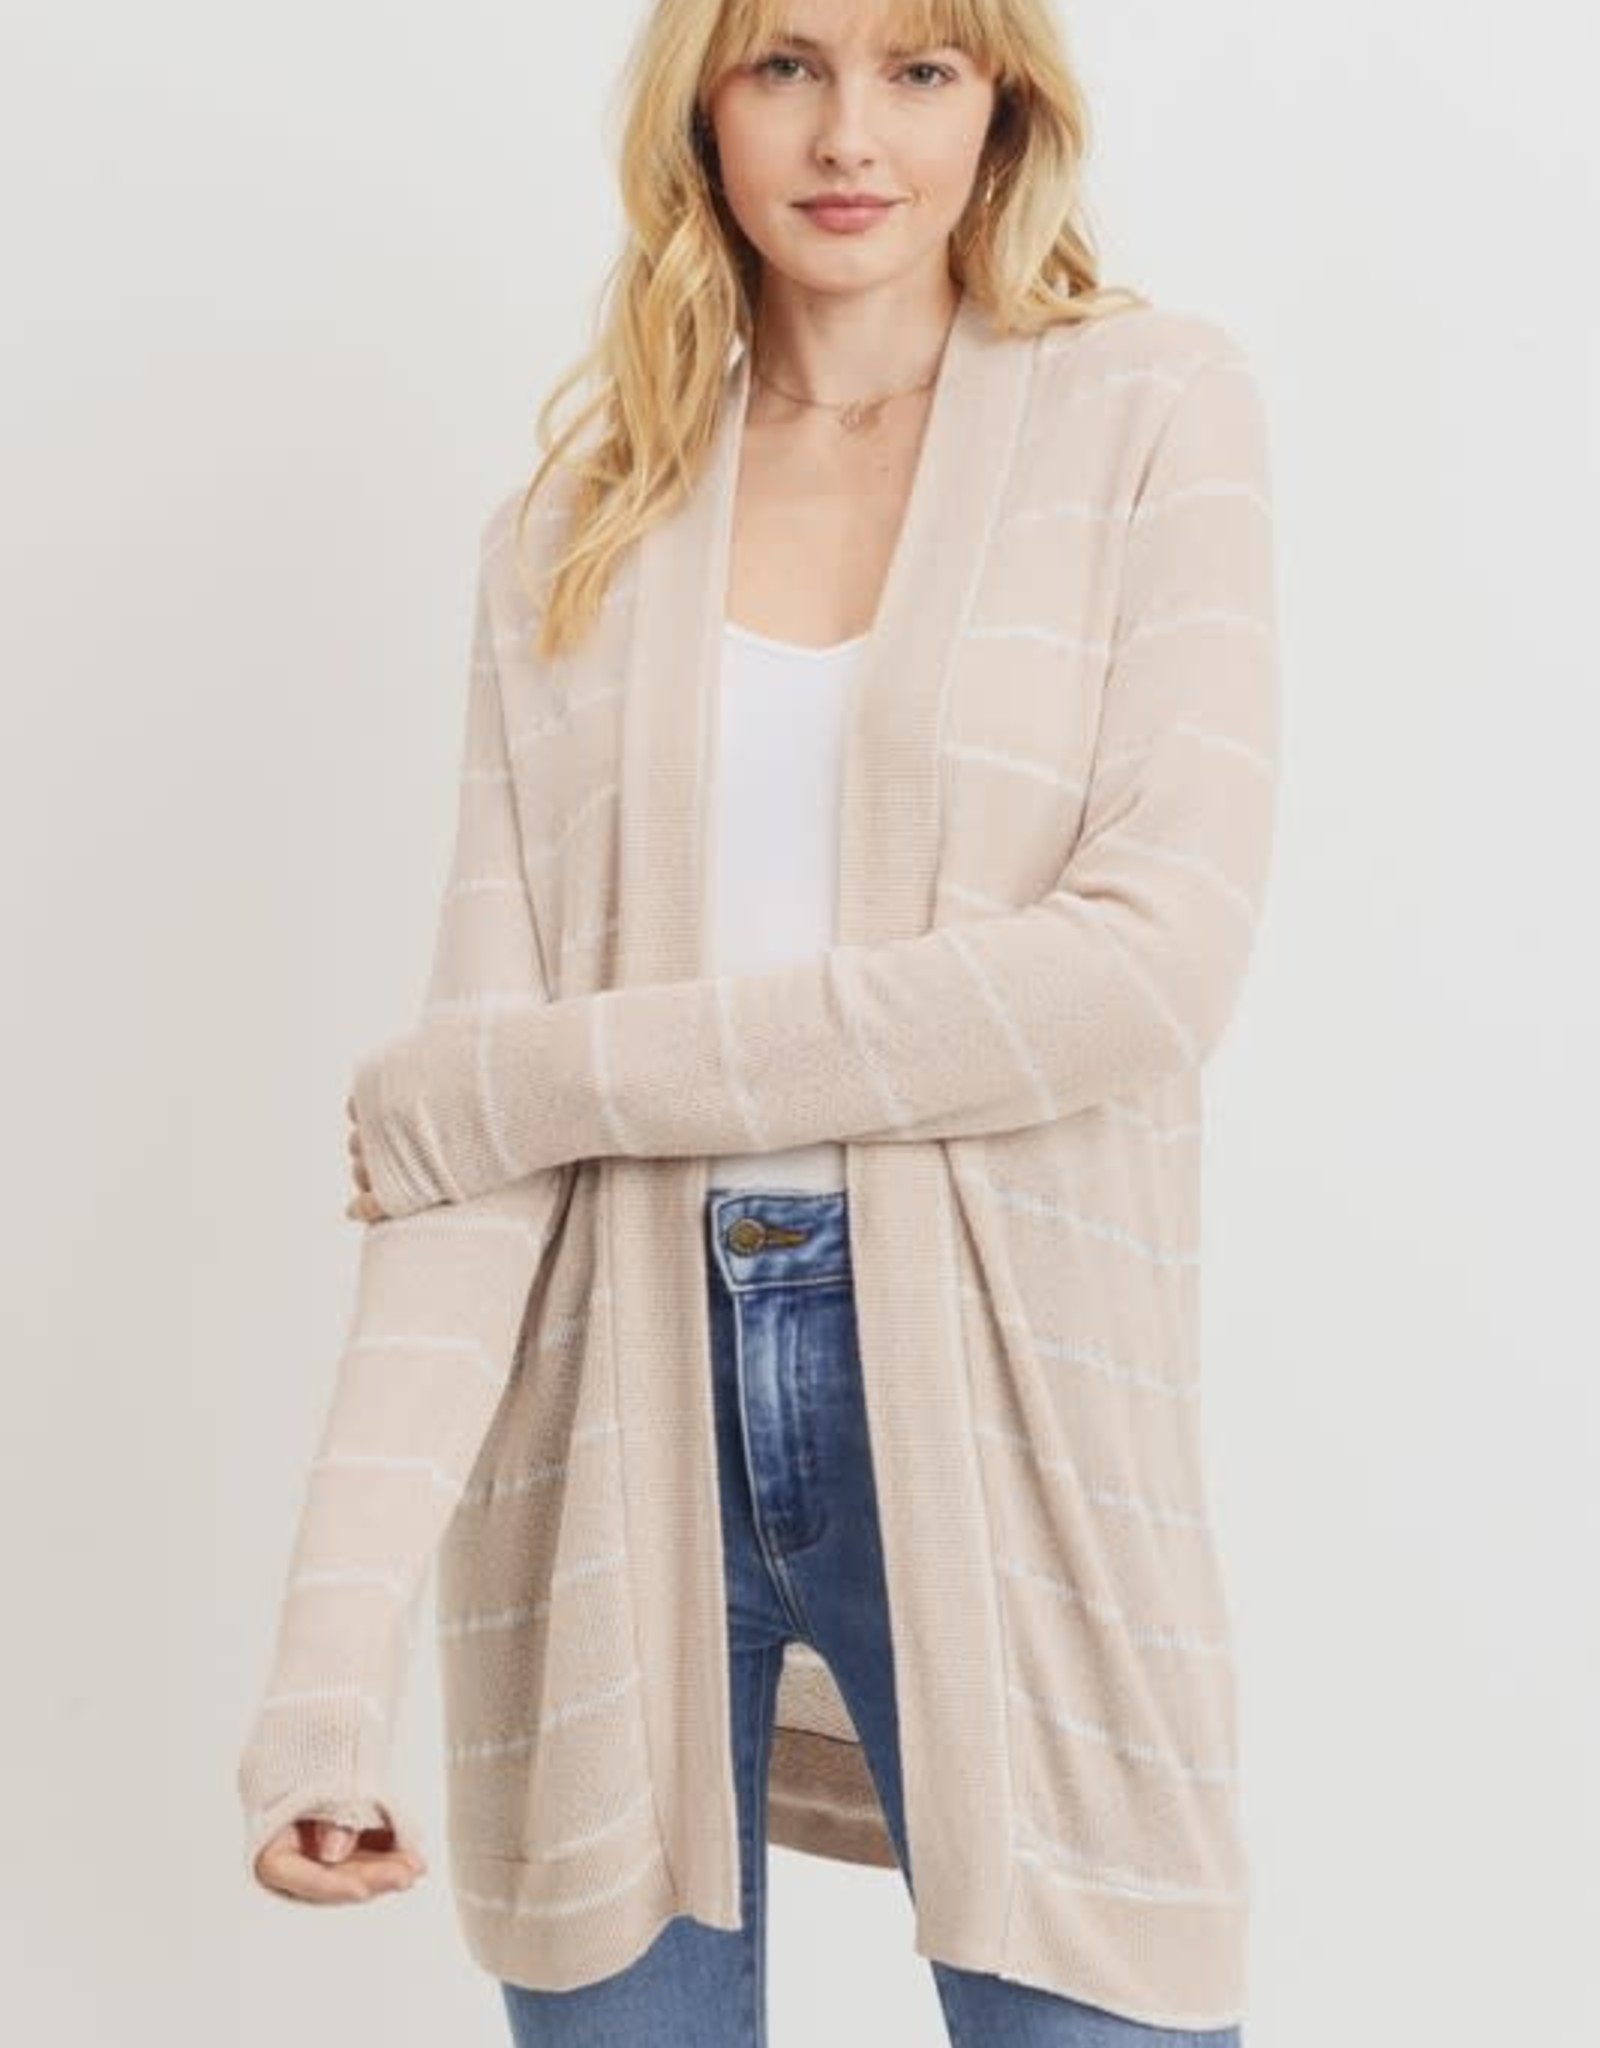 Oleanders Boutique Long sleeve thin cardigan